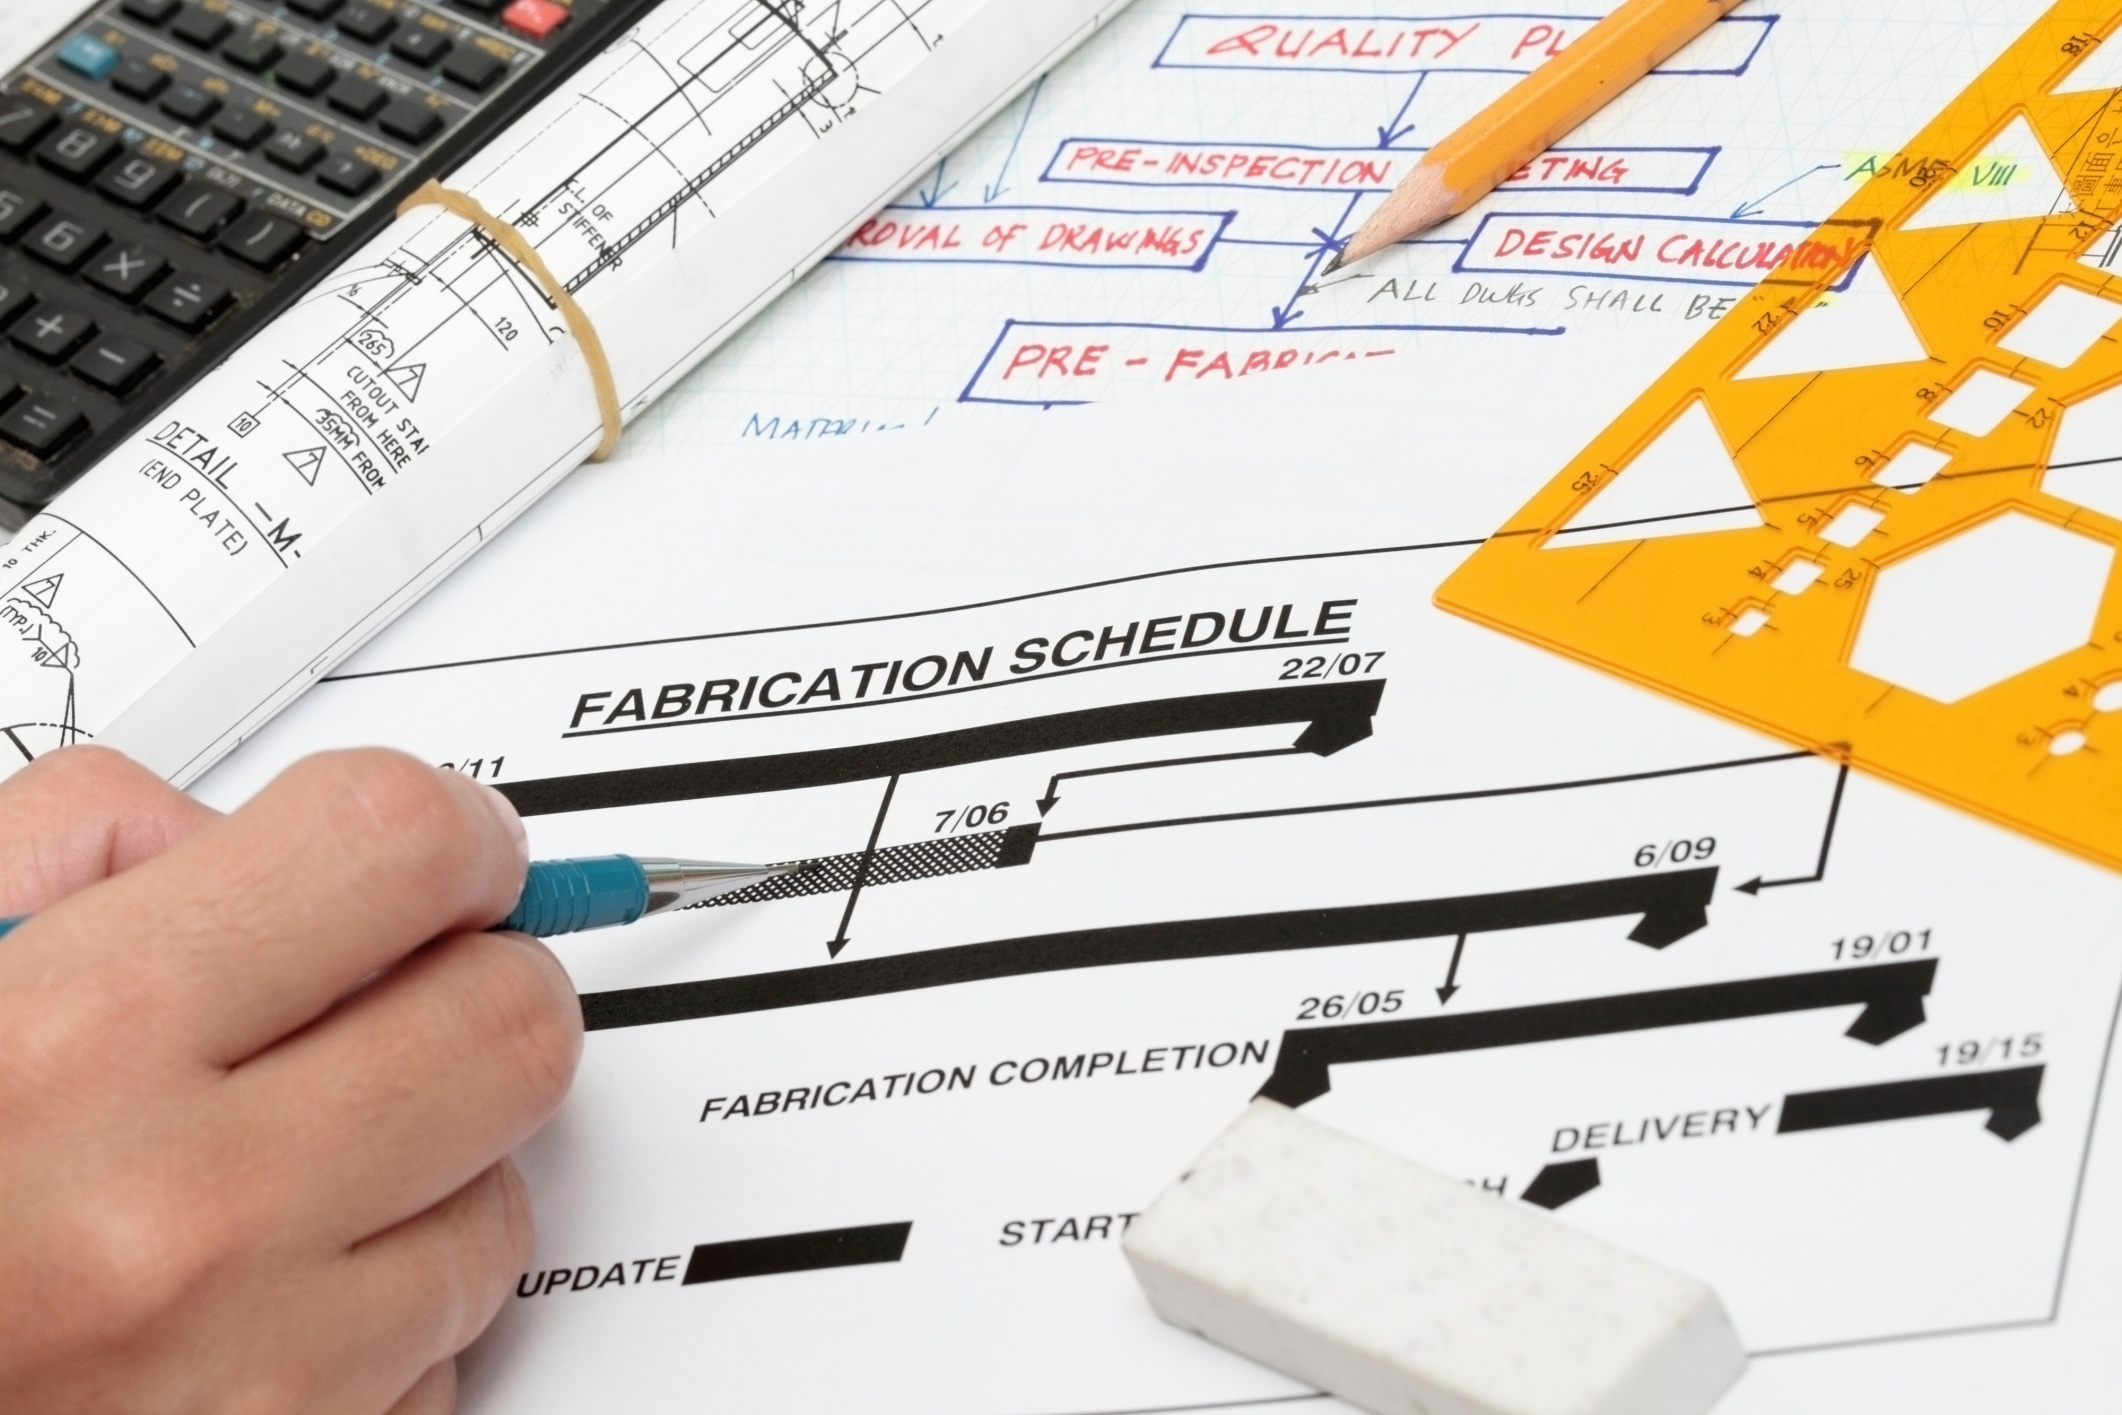 Design Build Construction  Because Your Budget and Schedule Matter Construction Schedule   A C E  Building Service